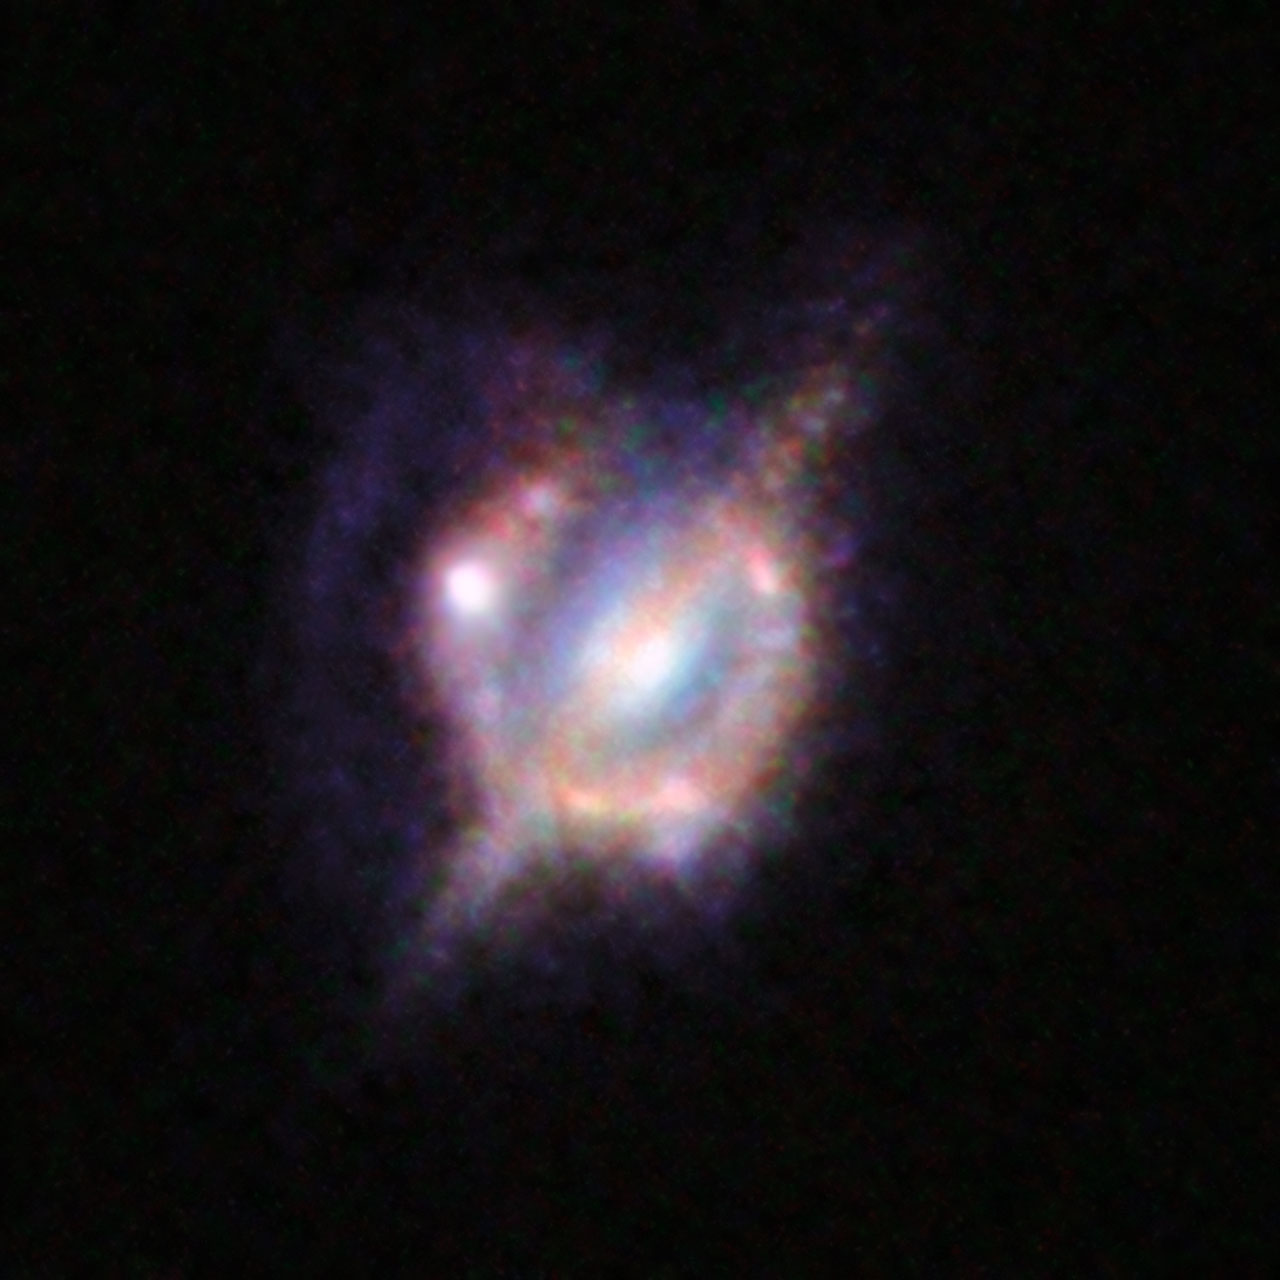 Merging galaxies in the distant Universe through a gravitational magnifying glass